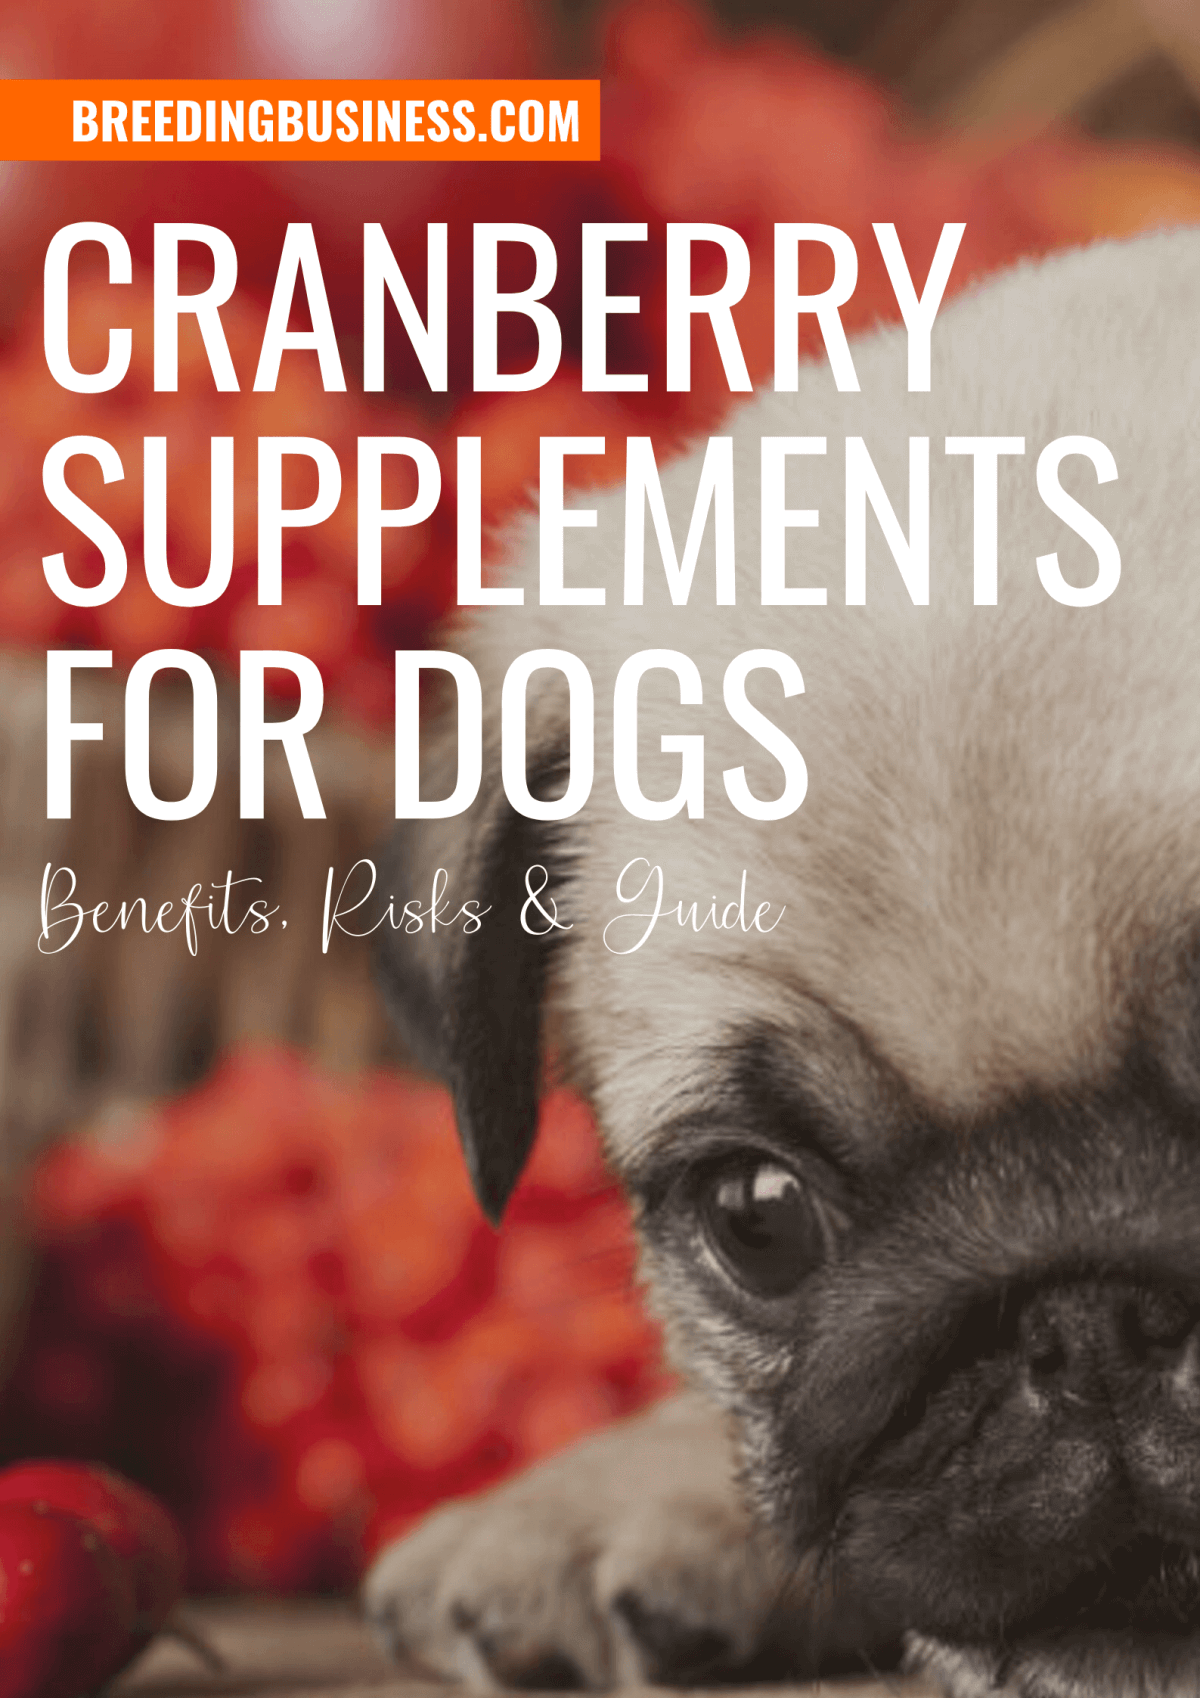 Guide: Cranberry Supplements for Dogs